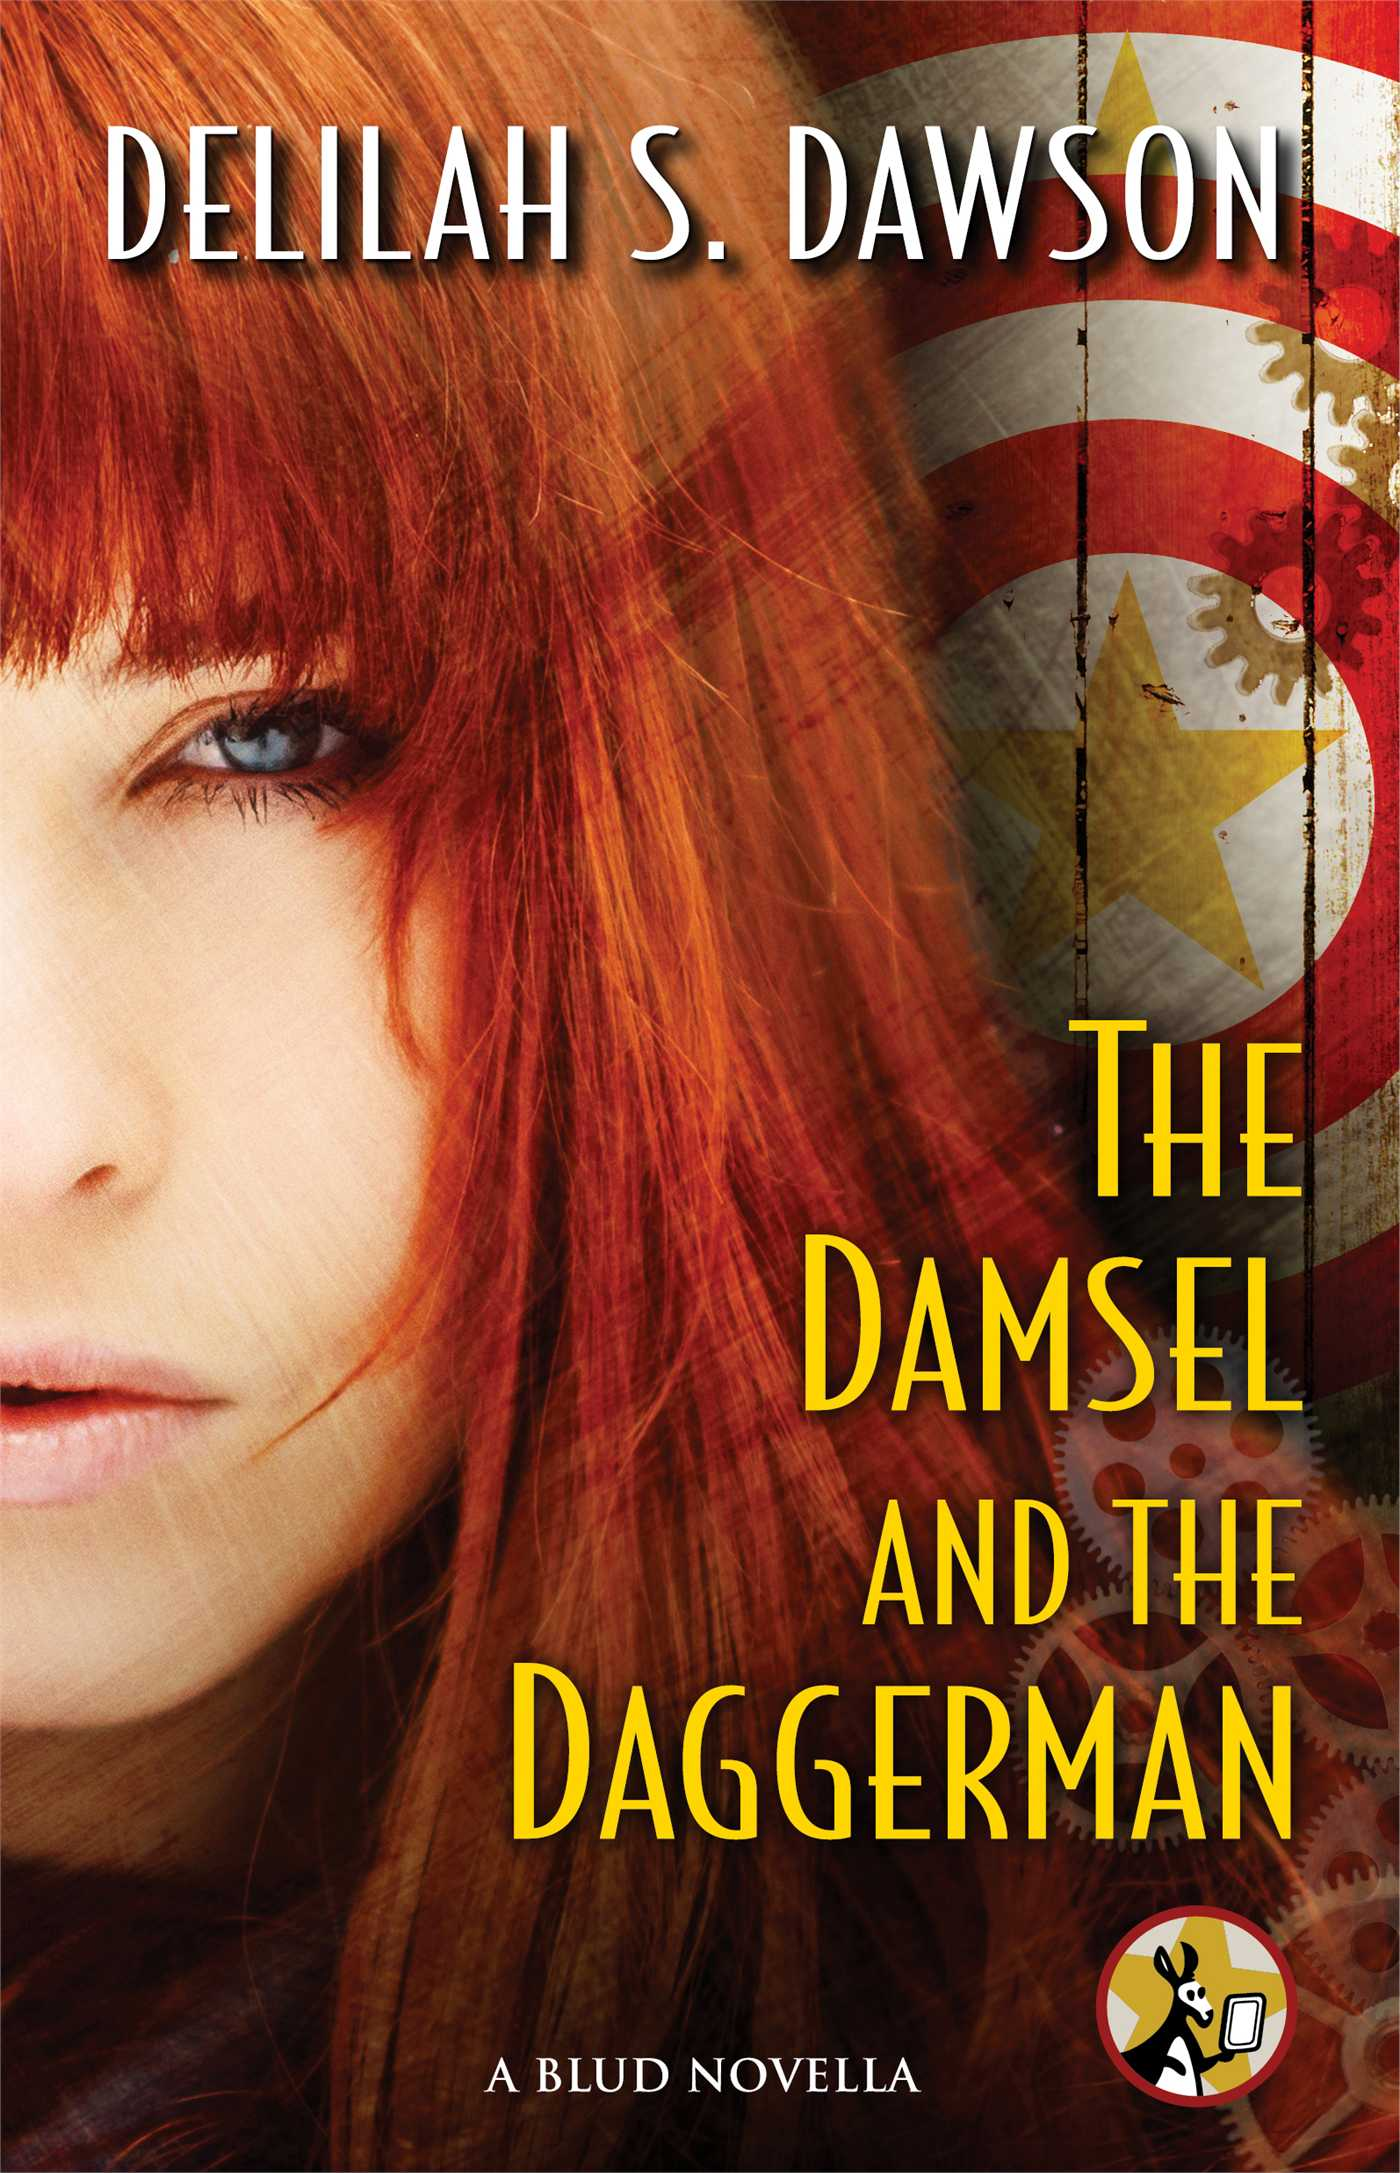 Damsel and the daggerman 9781476715438 hr